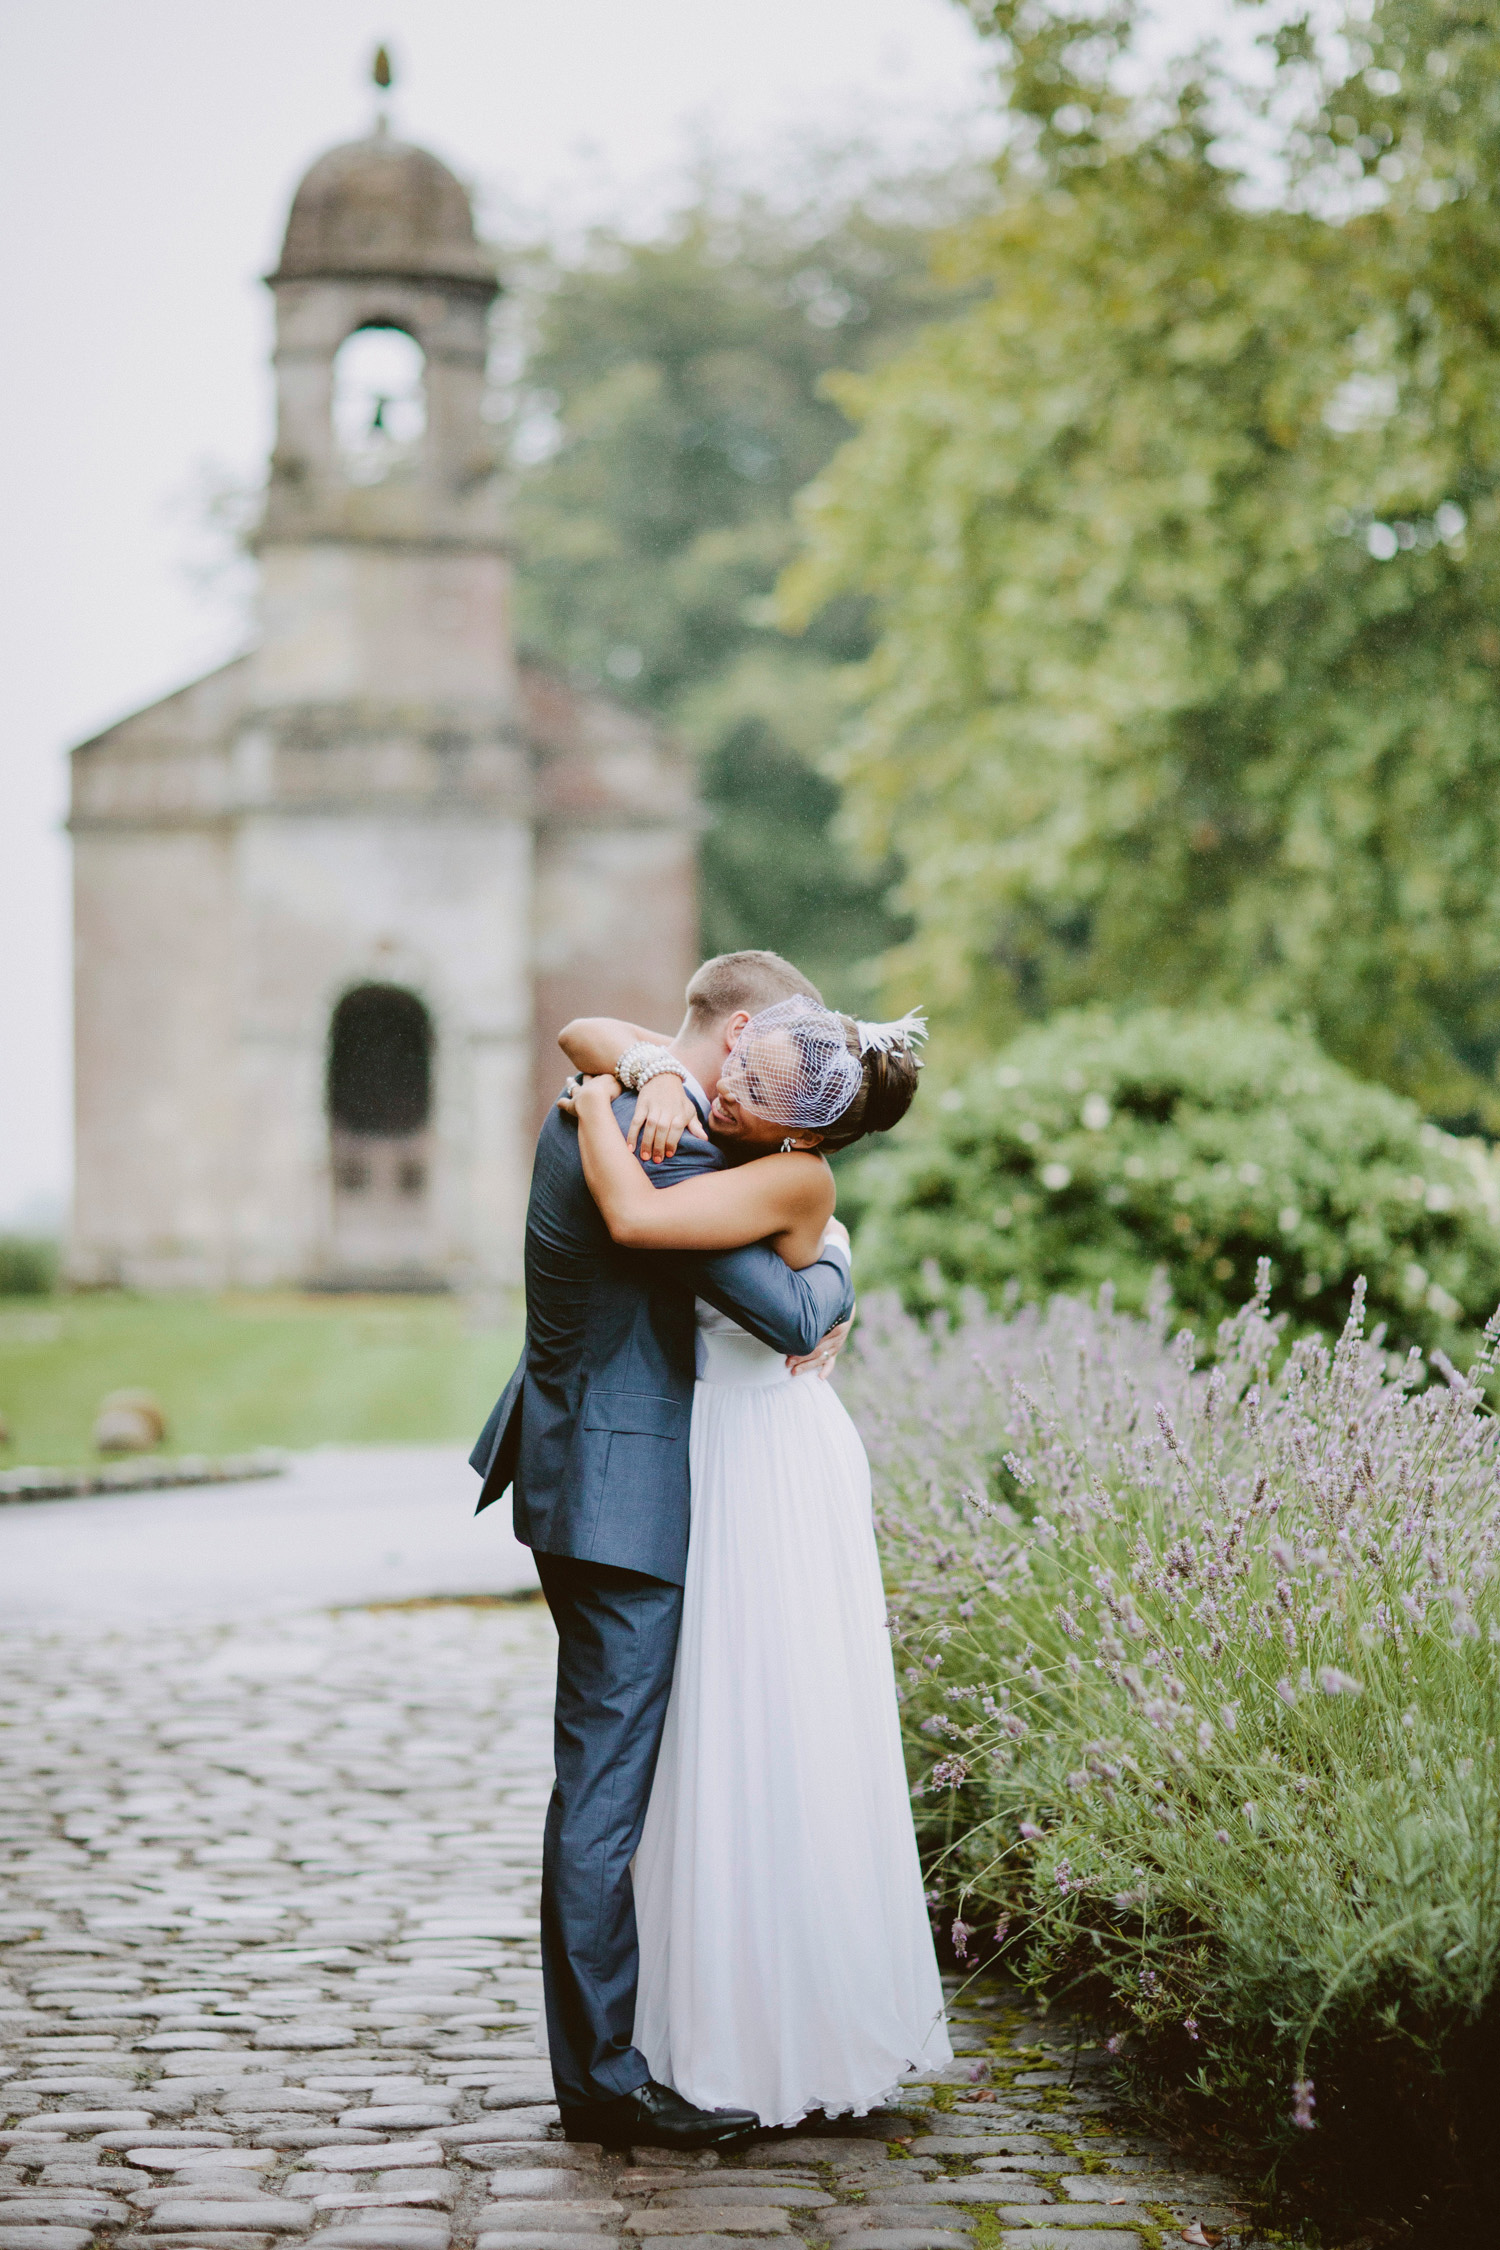 bride and groom hugging at wedding venue in Somerset